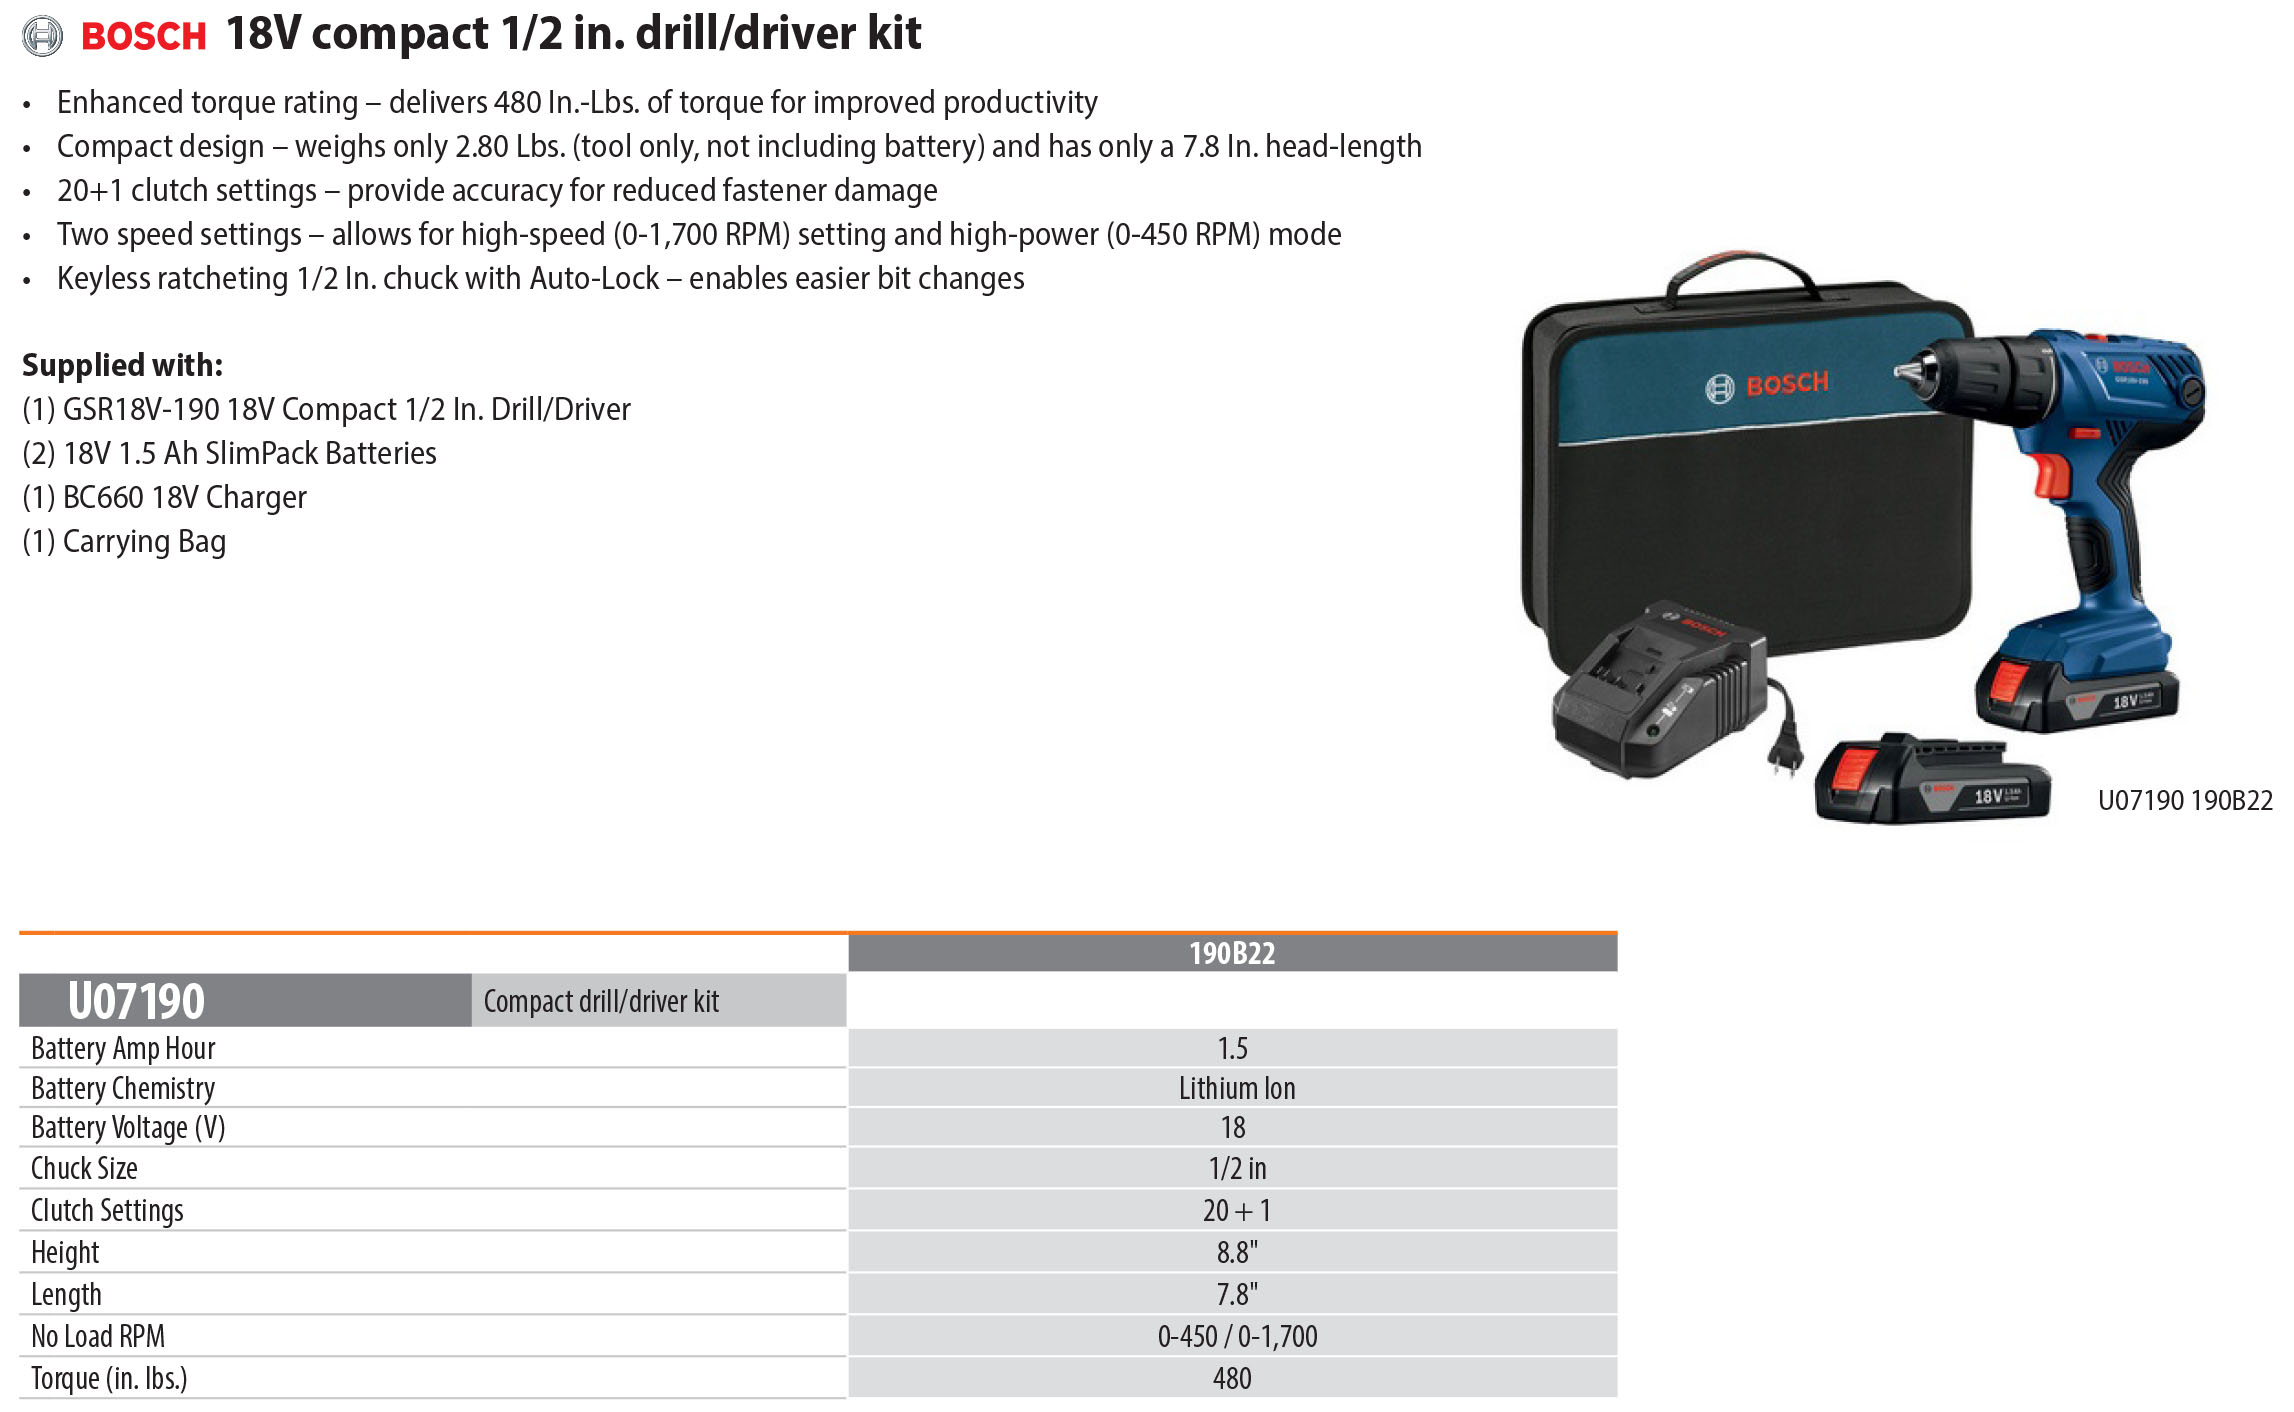 Bosch 18V compact 1/2 in. drill driver kit Bosch Drill Driver Kit